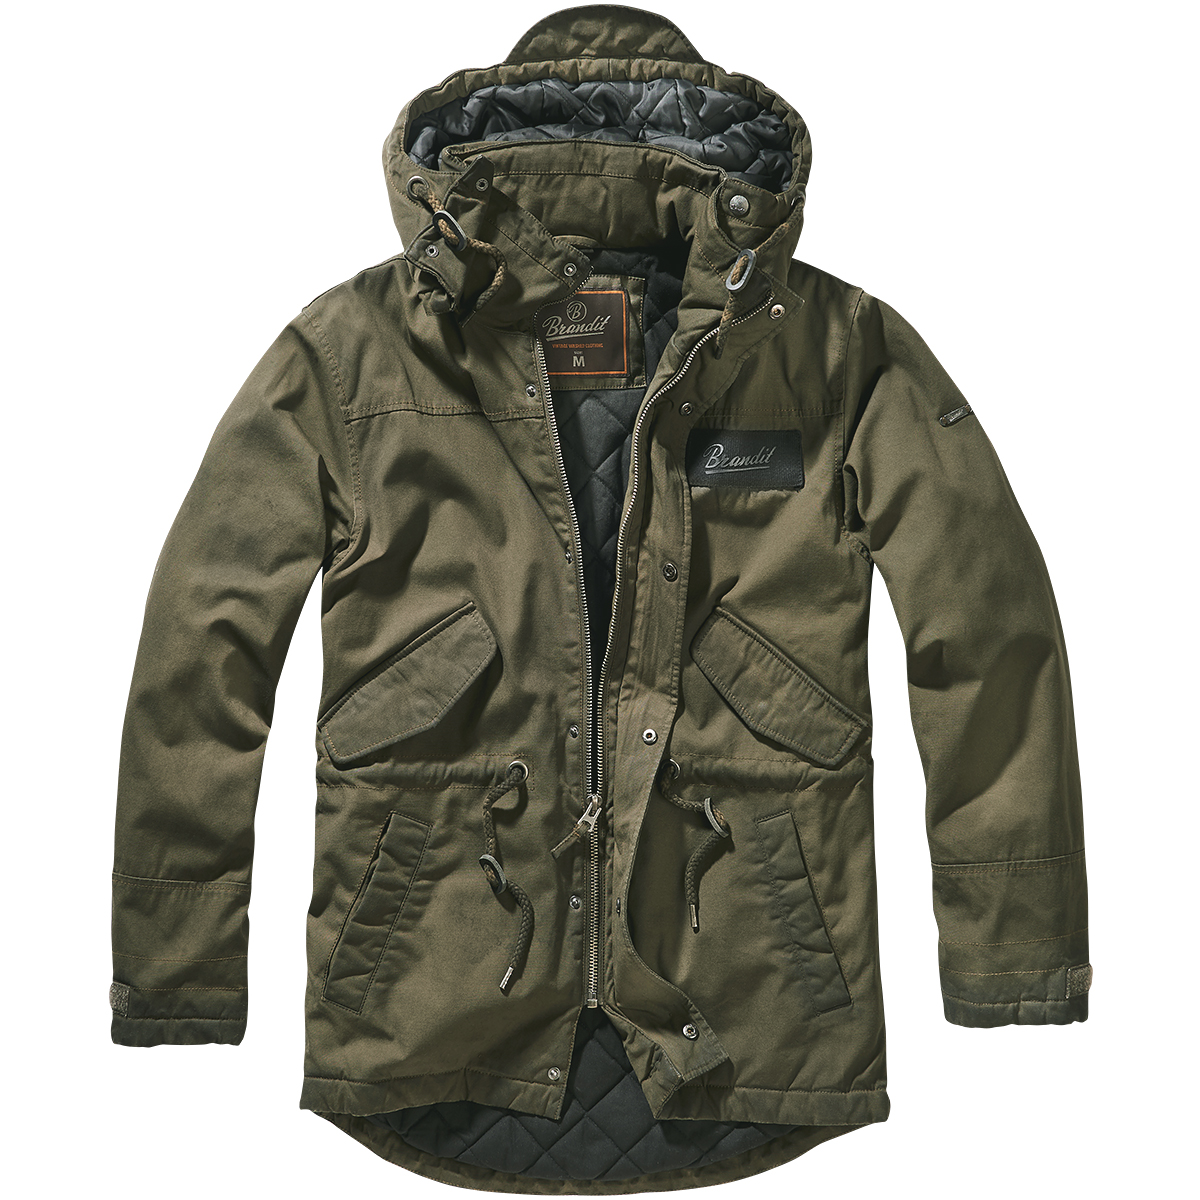 Military Parkas & Field Parkas UK | Military 1st